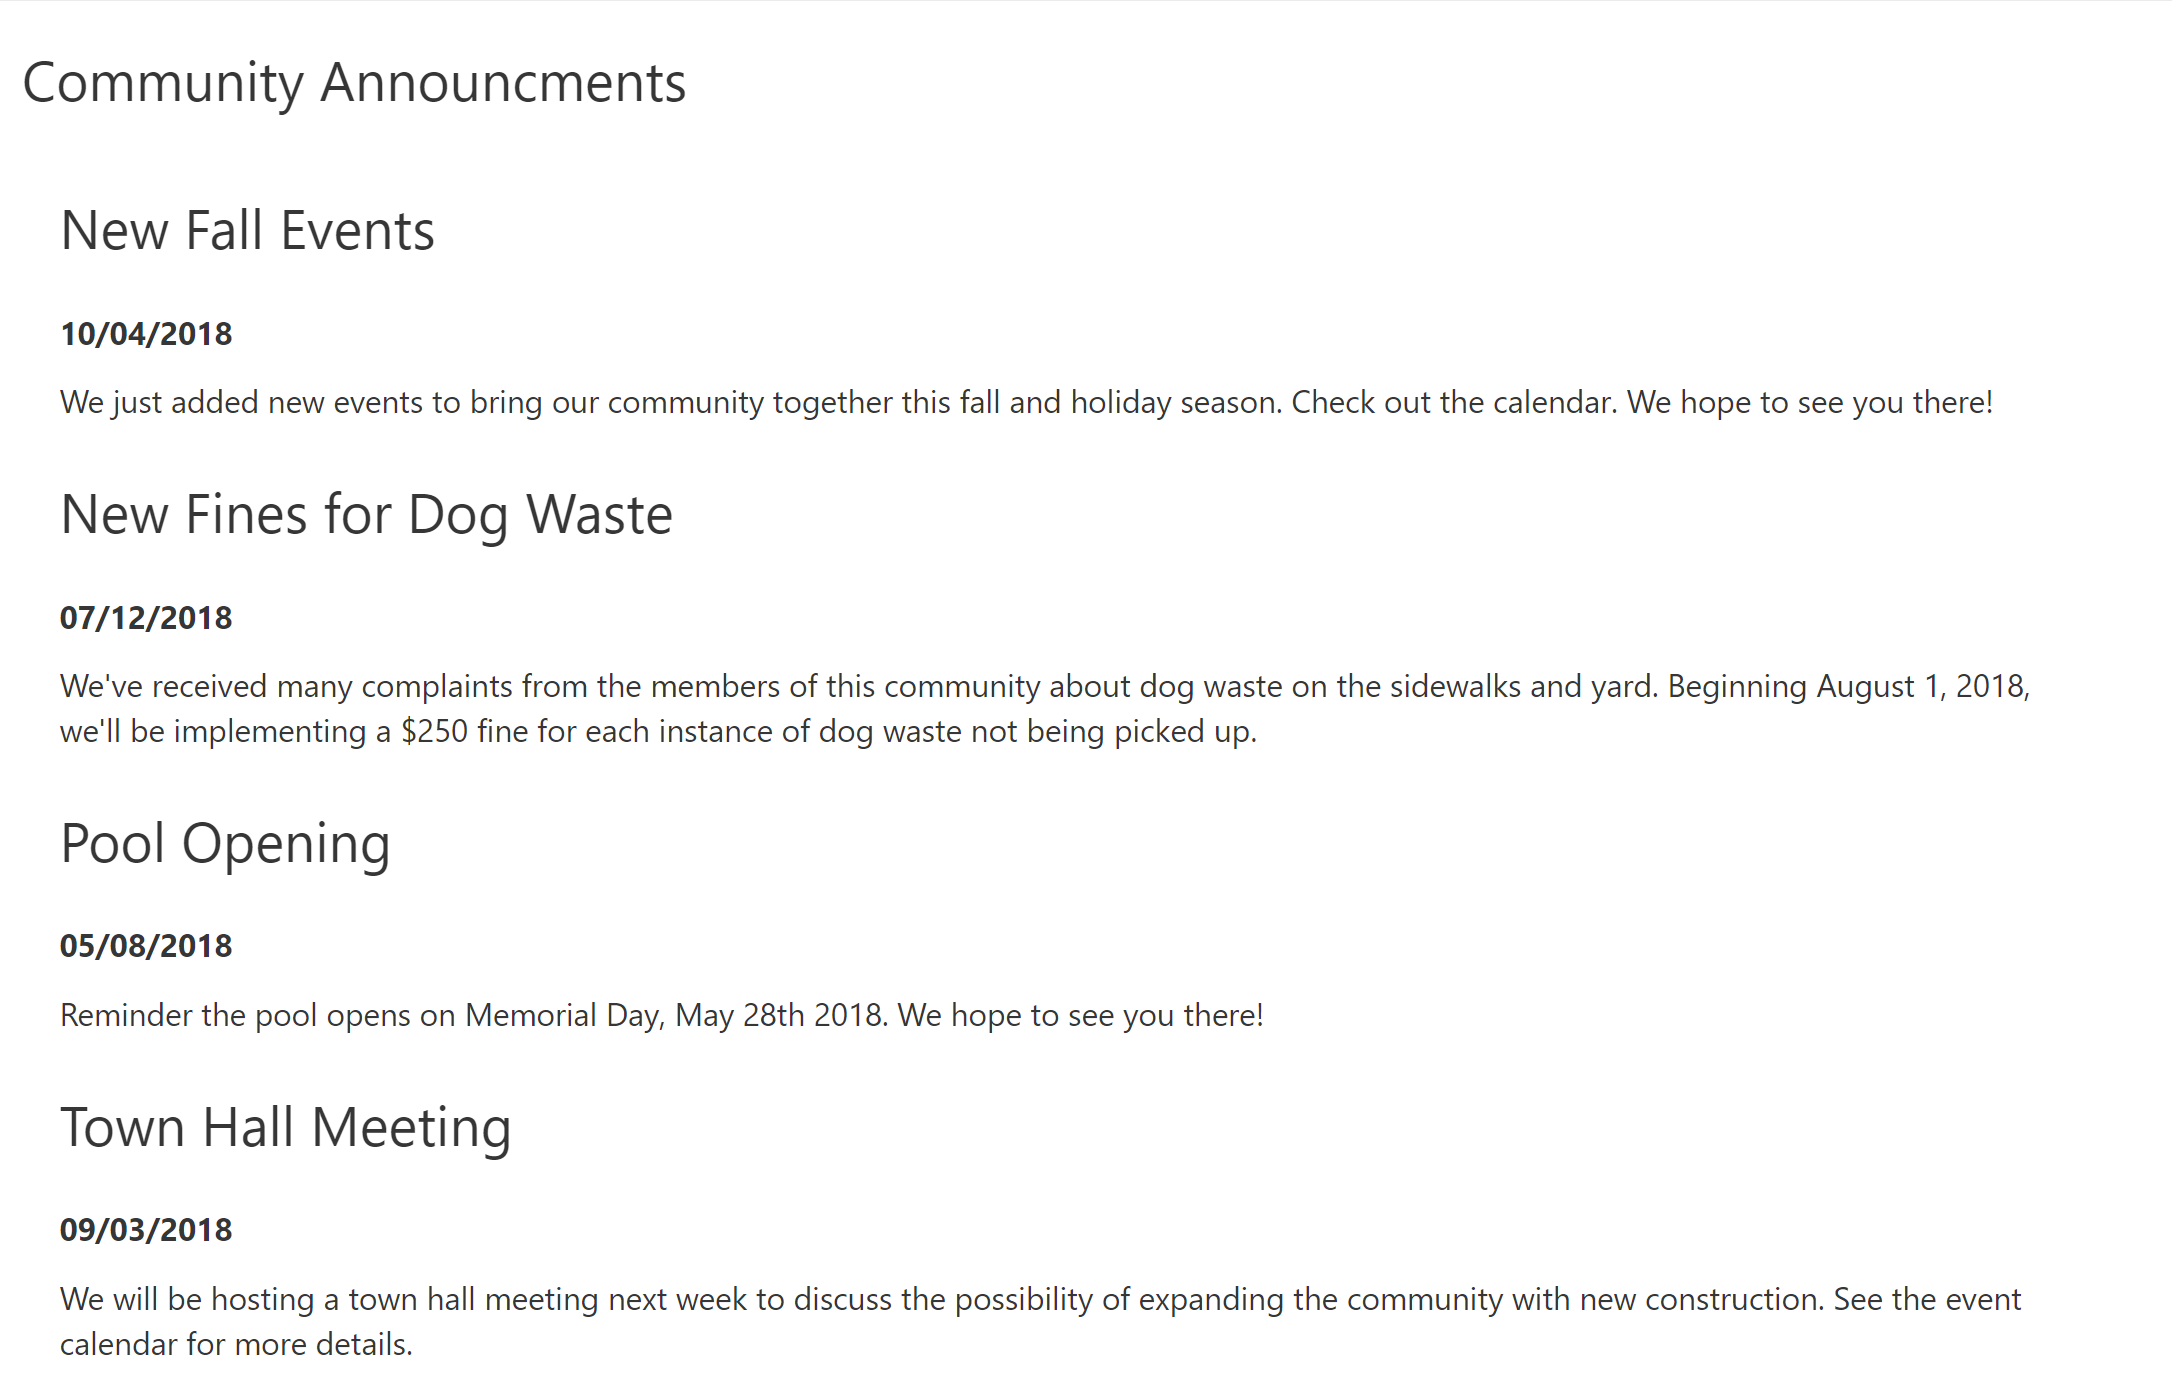 A Community Announcement Page Makes It Easy To Keep Up With Whats Happening Your Neighbors